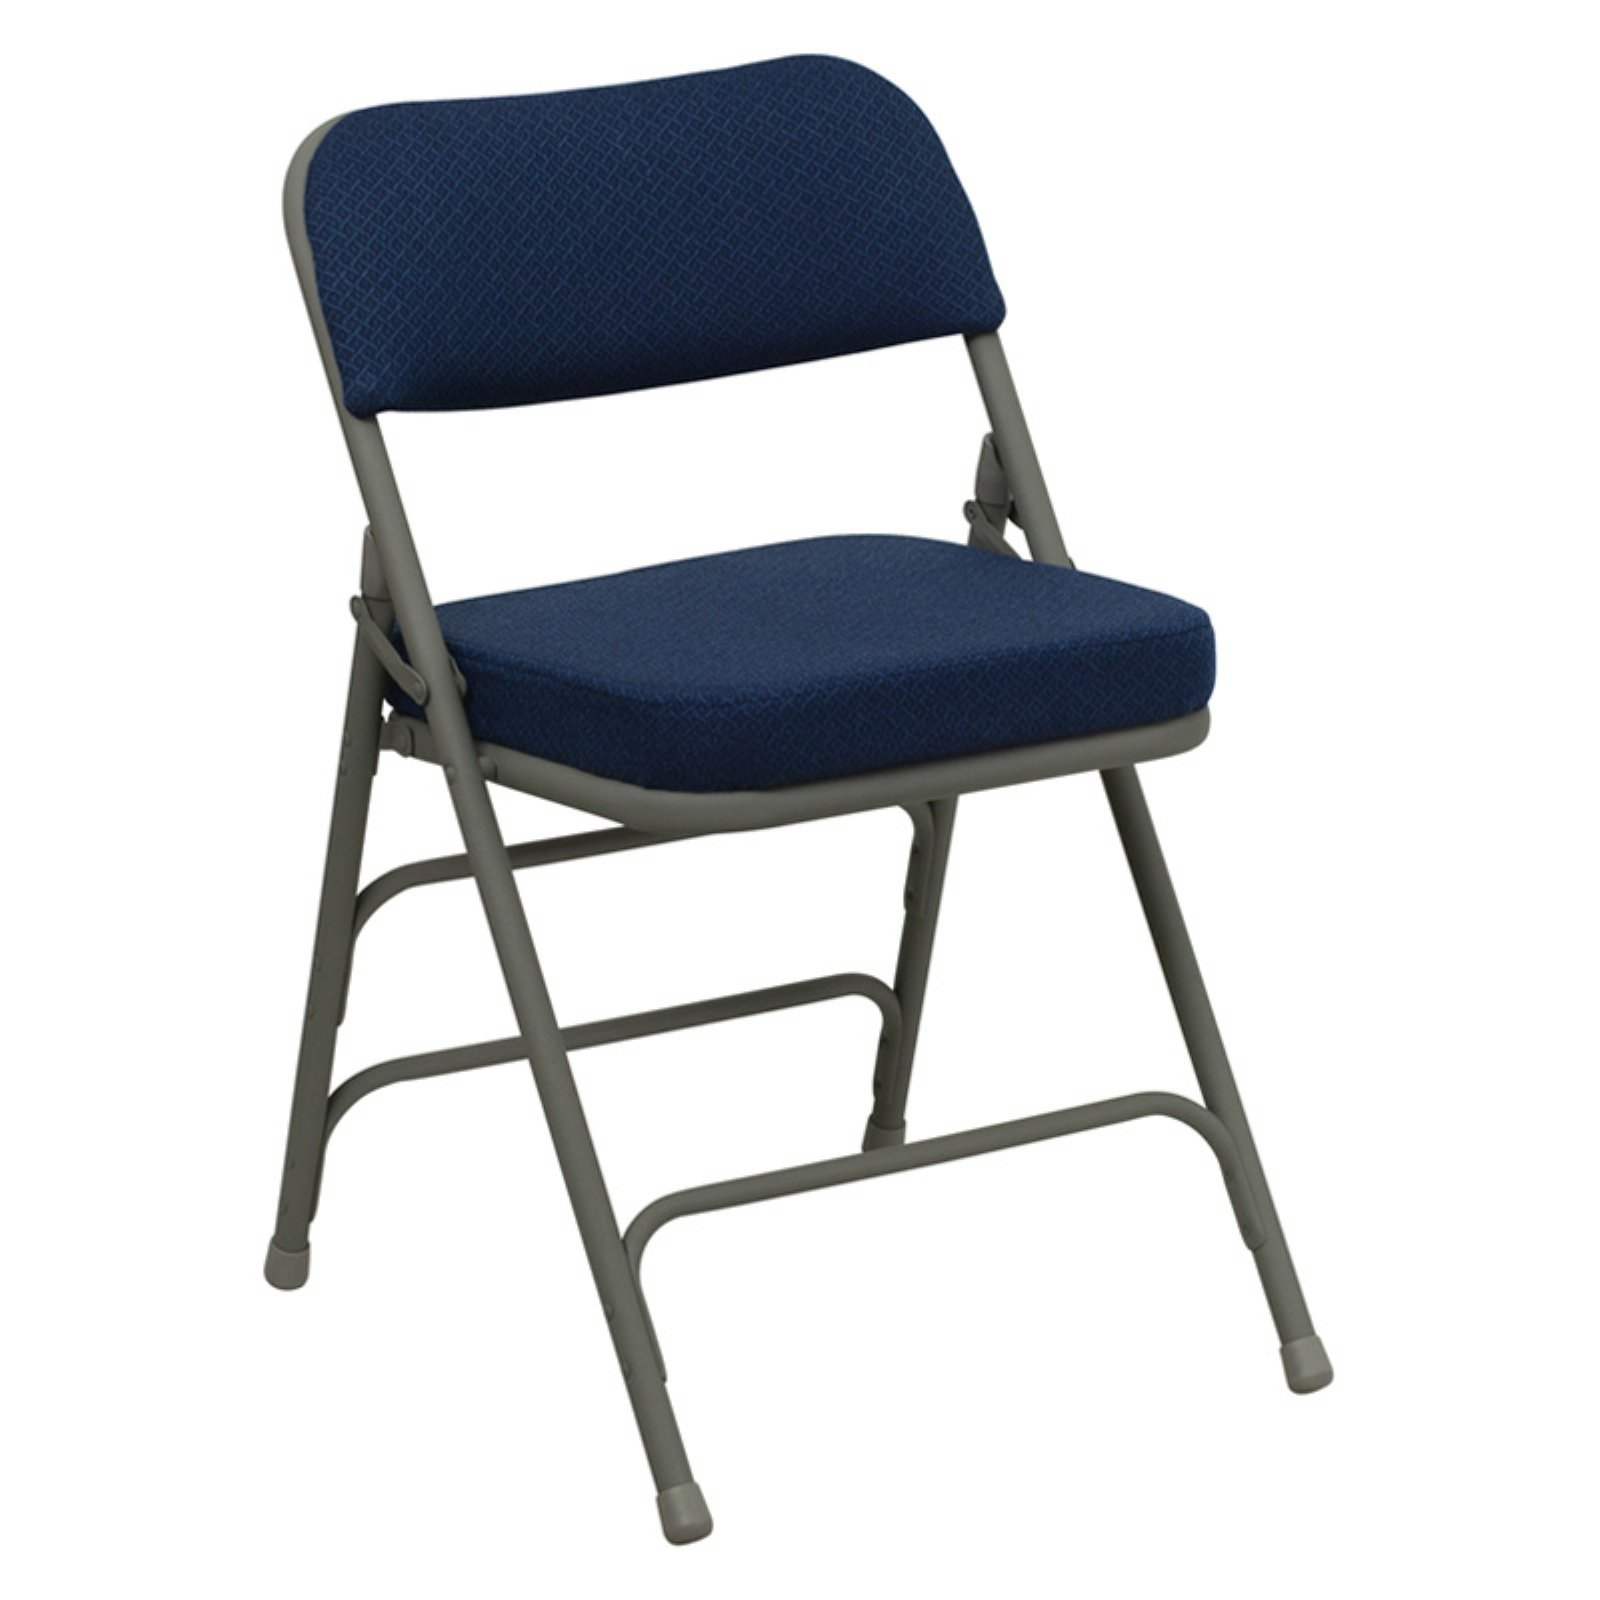 Folding Tables & Chairs Walmart